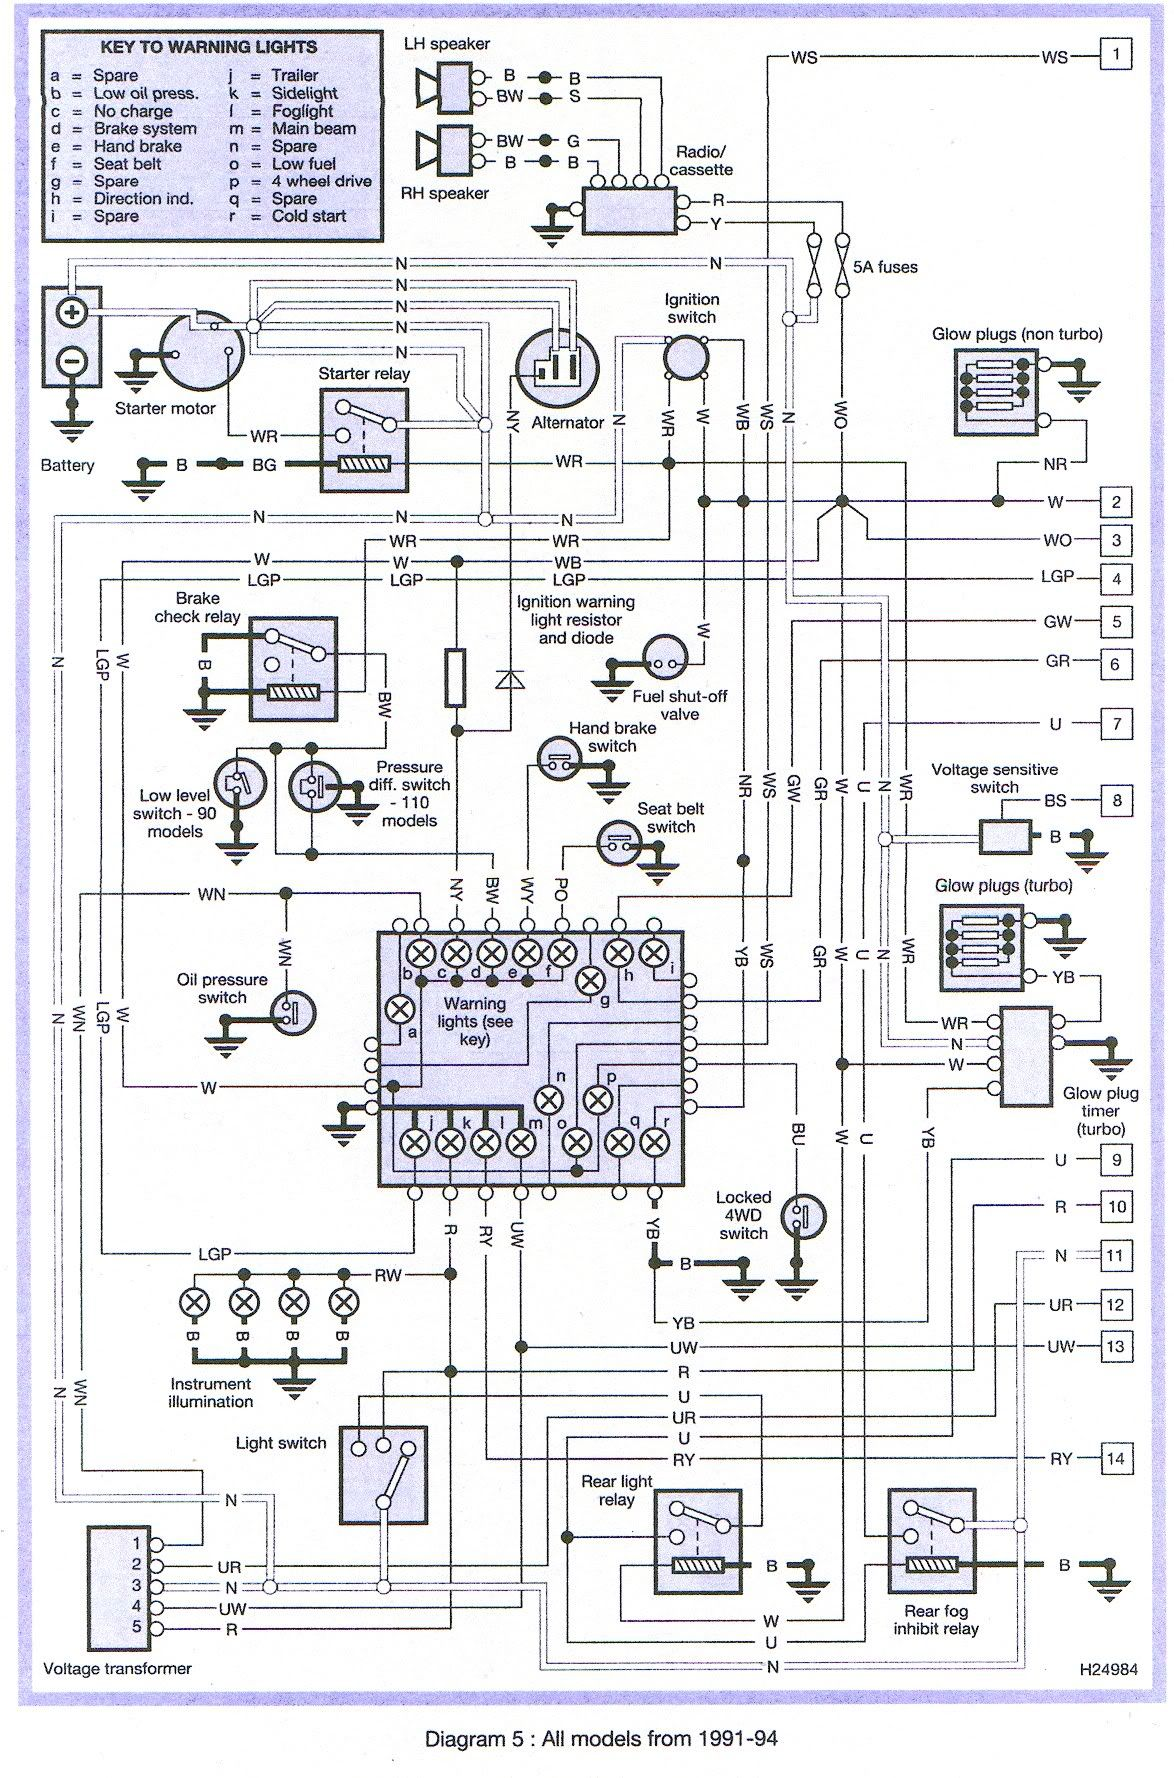 hight resolution of manual electrical wiring and circuits diagrams body repair manual rover 75 wiring diagram and body electrical system